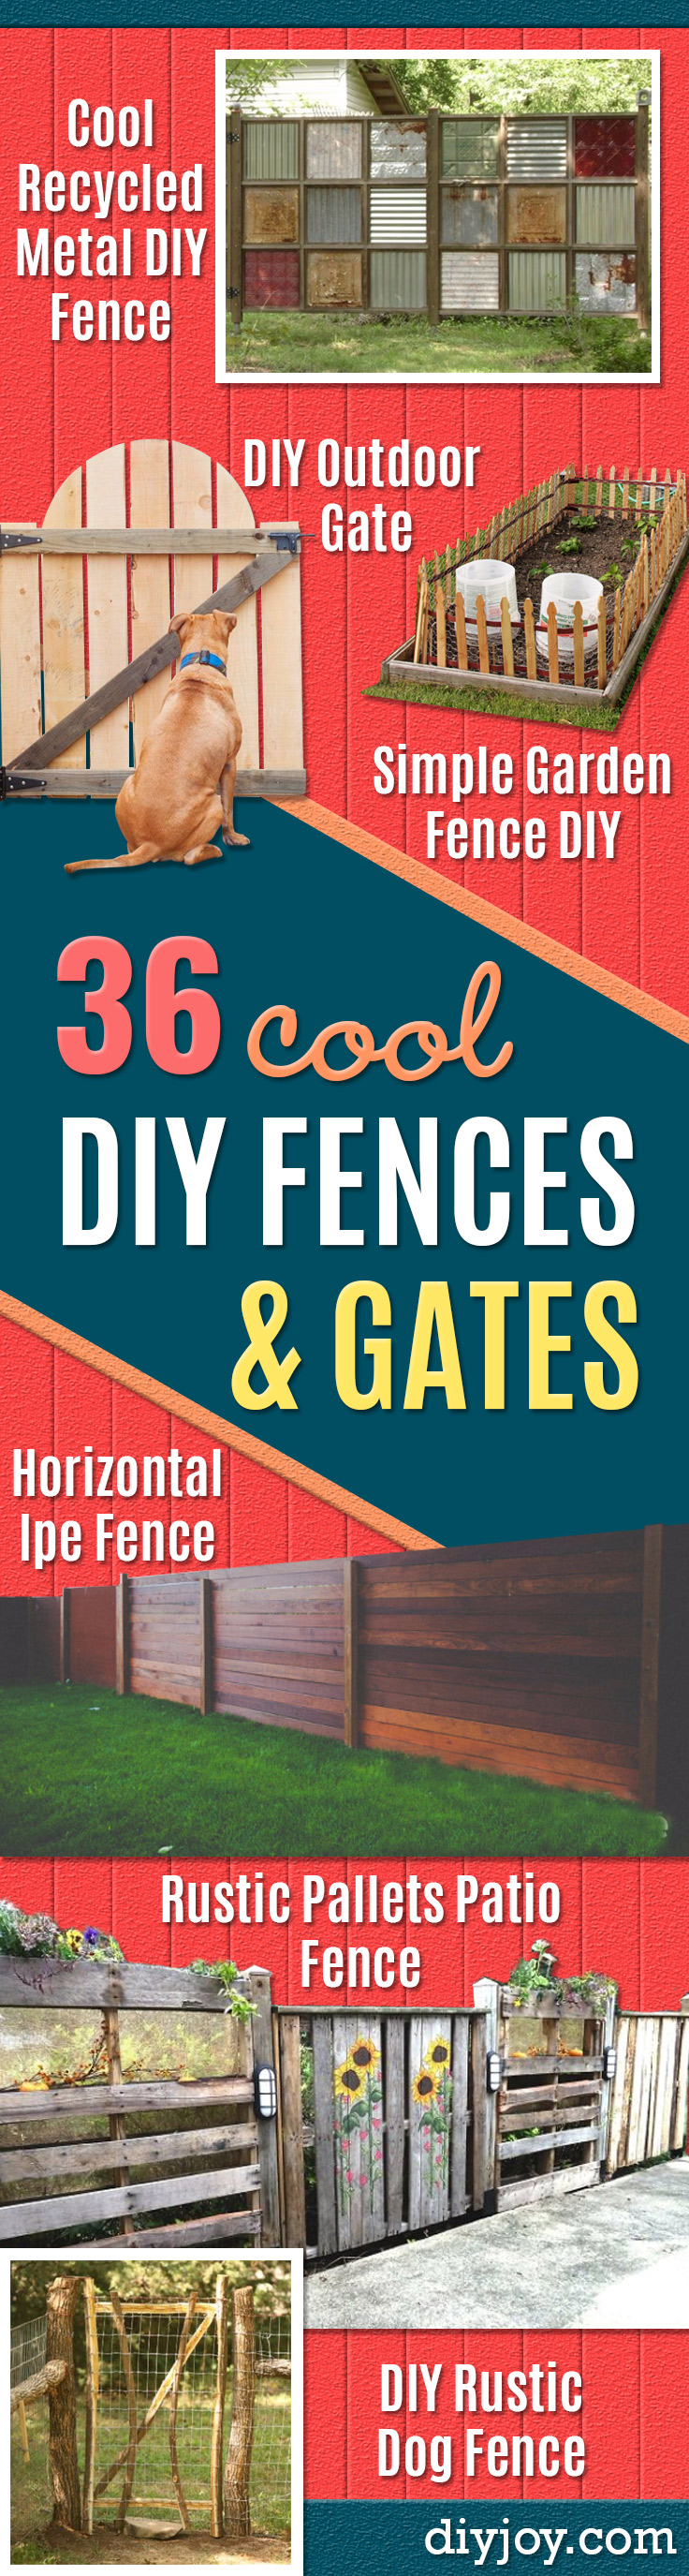 DIY Fences And Gates   How To Make Easy Fence And Gate Project For Backyard  And